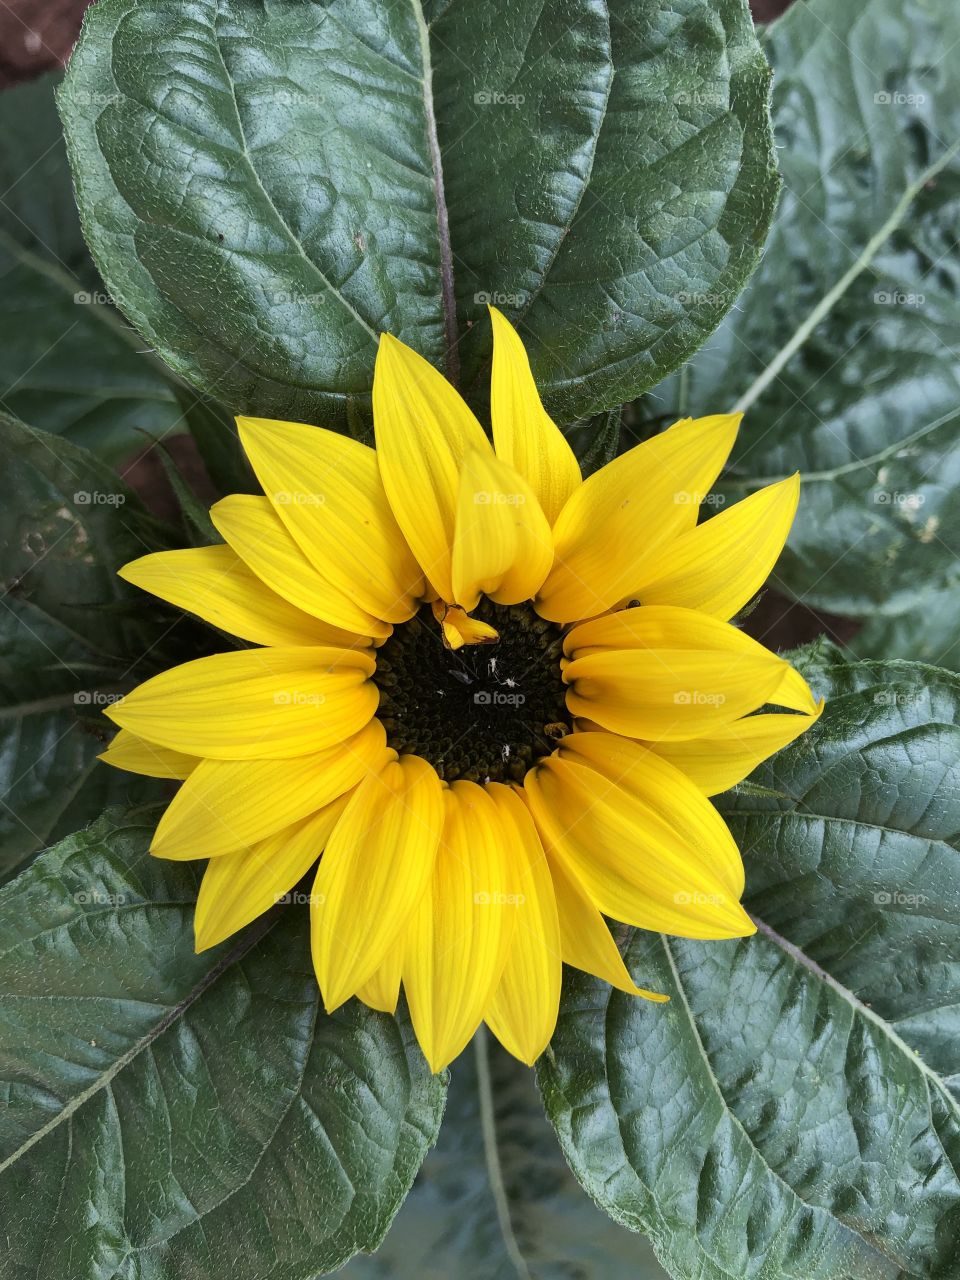 """We welcomed a new addition to our garden today, a very very lovely """"sunflower."""""""